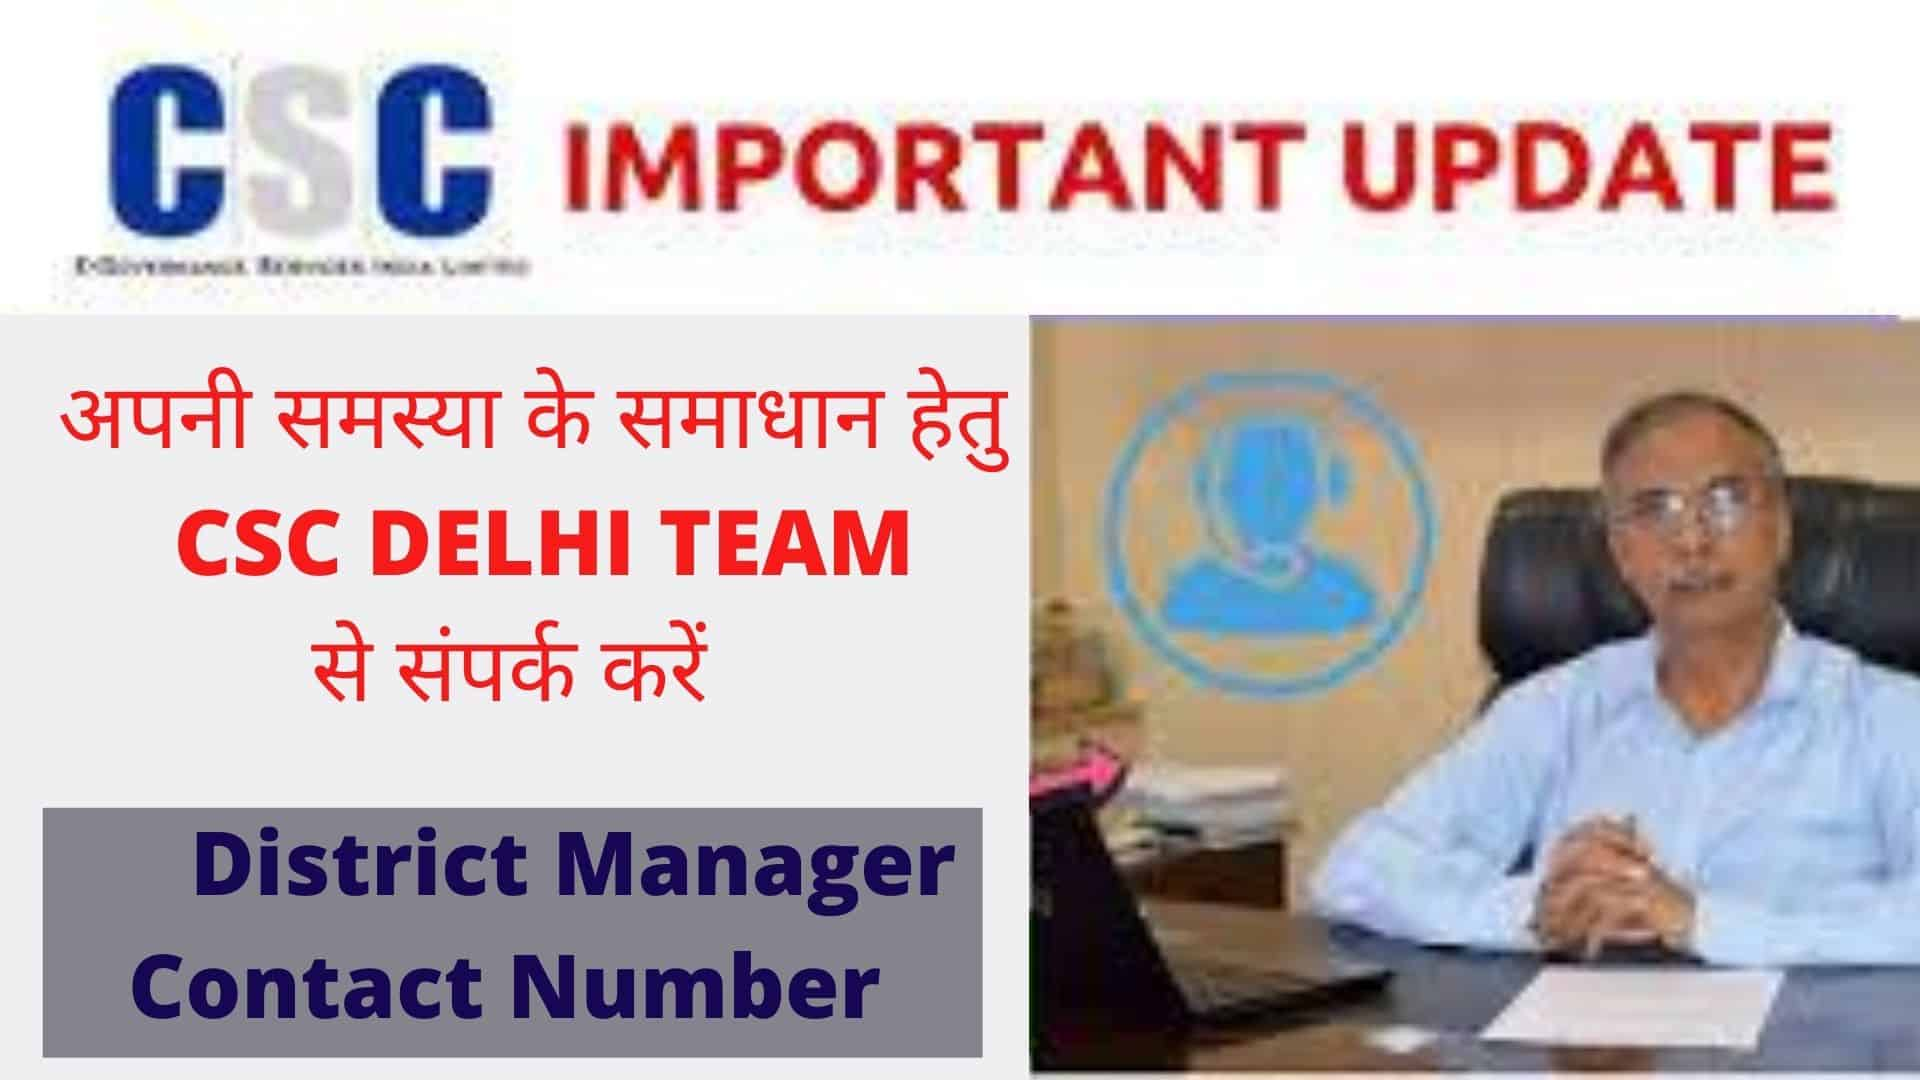 CSC District manager, CSC district manager contact number, CSC helpline number